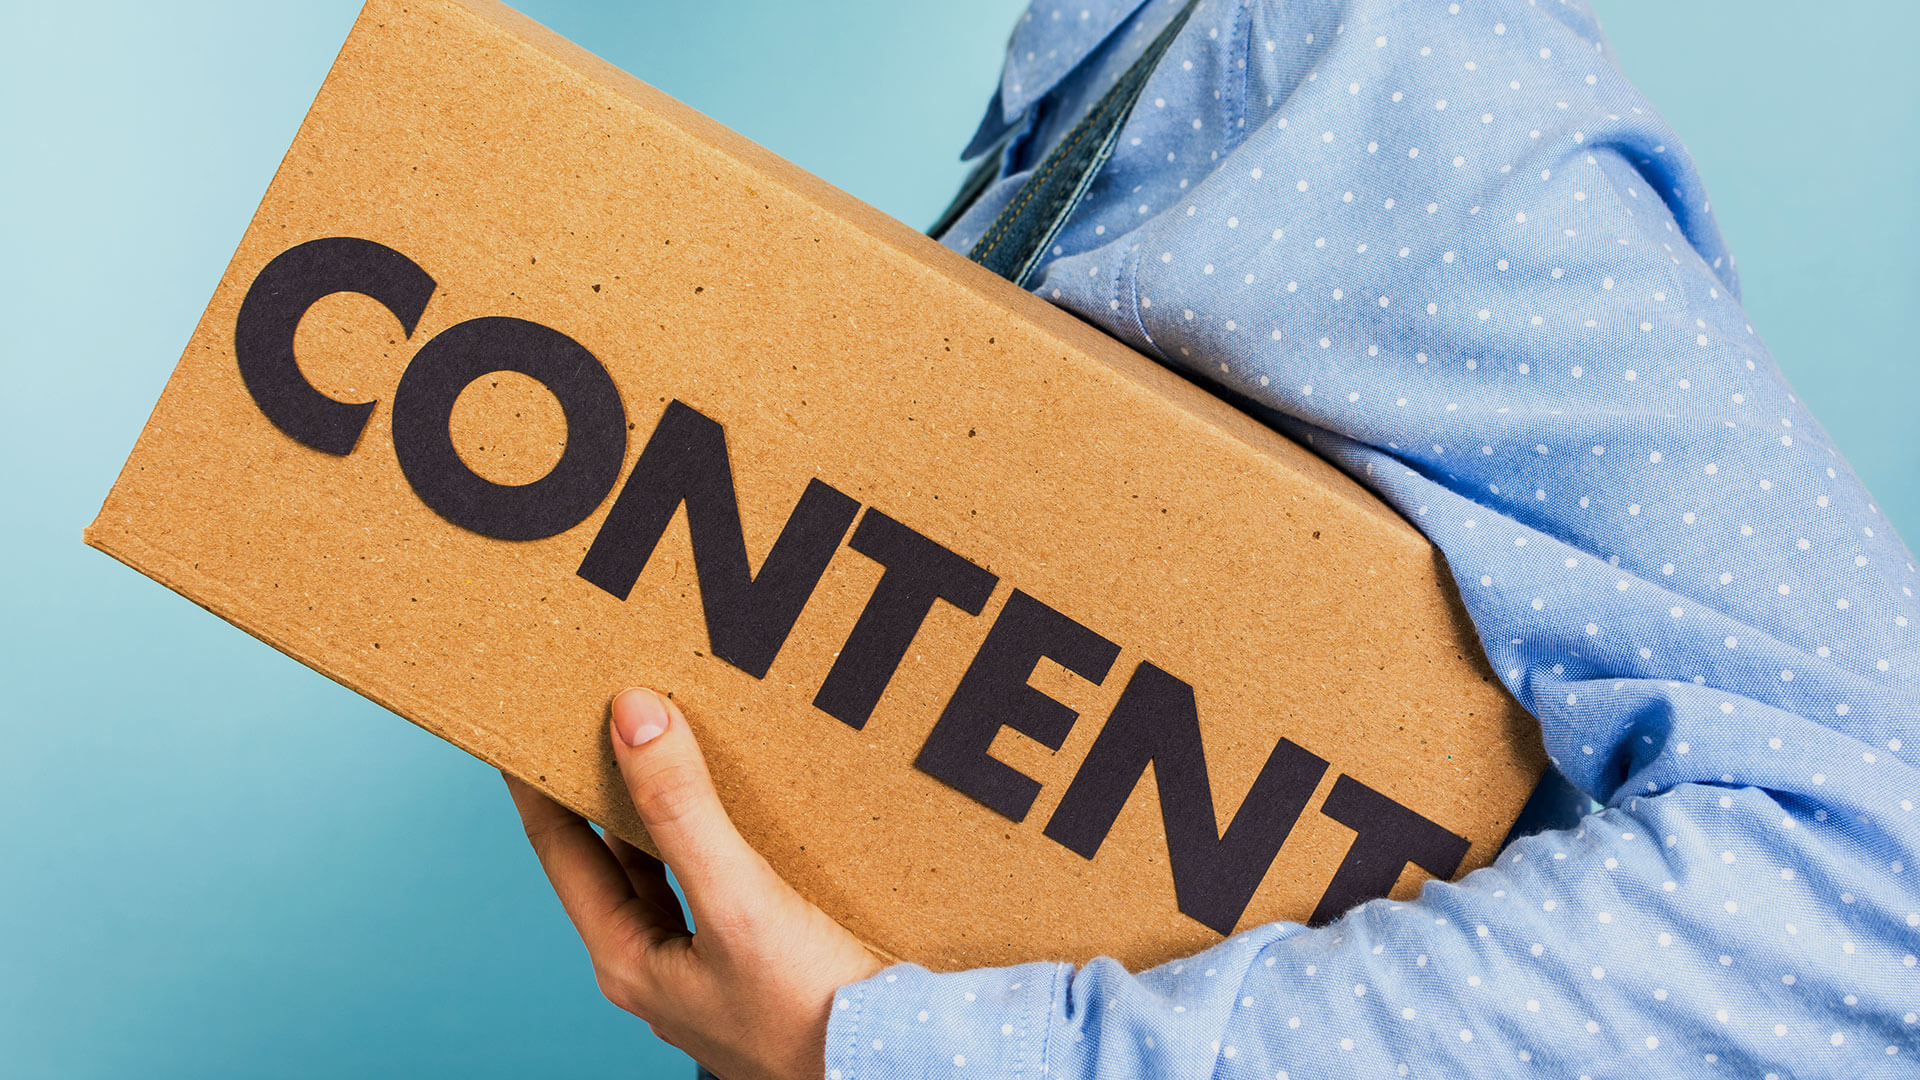 Clean and fast content unleashes marketing's potential